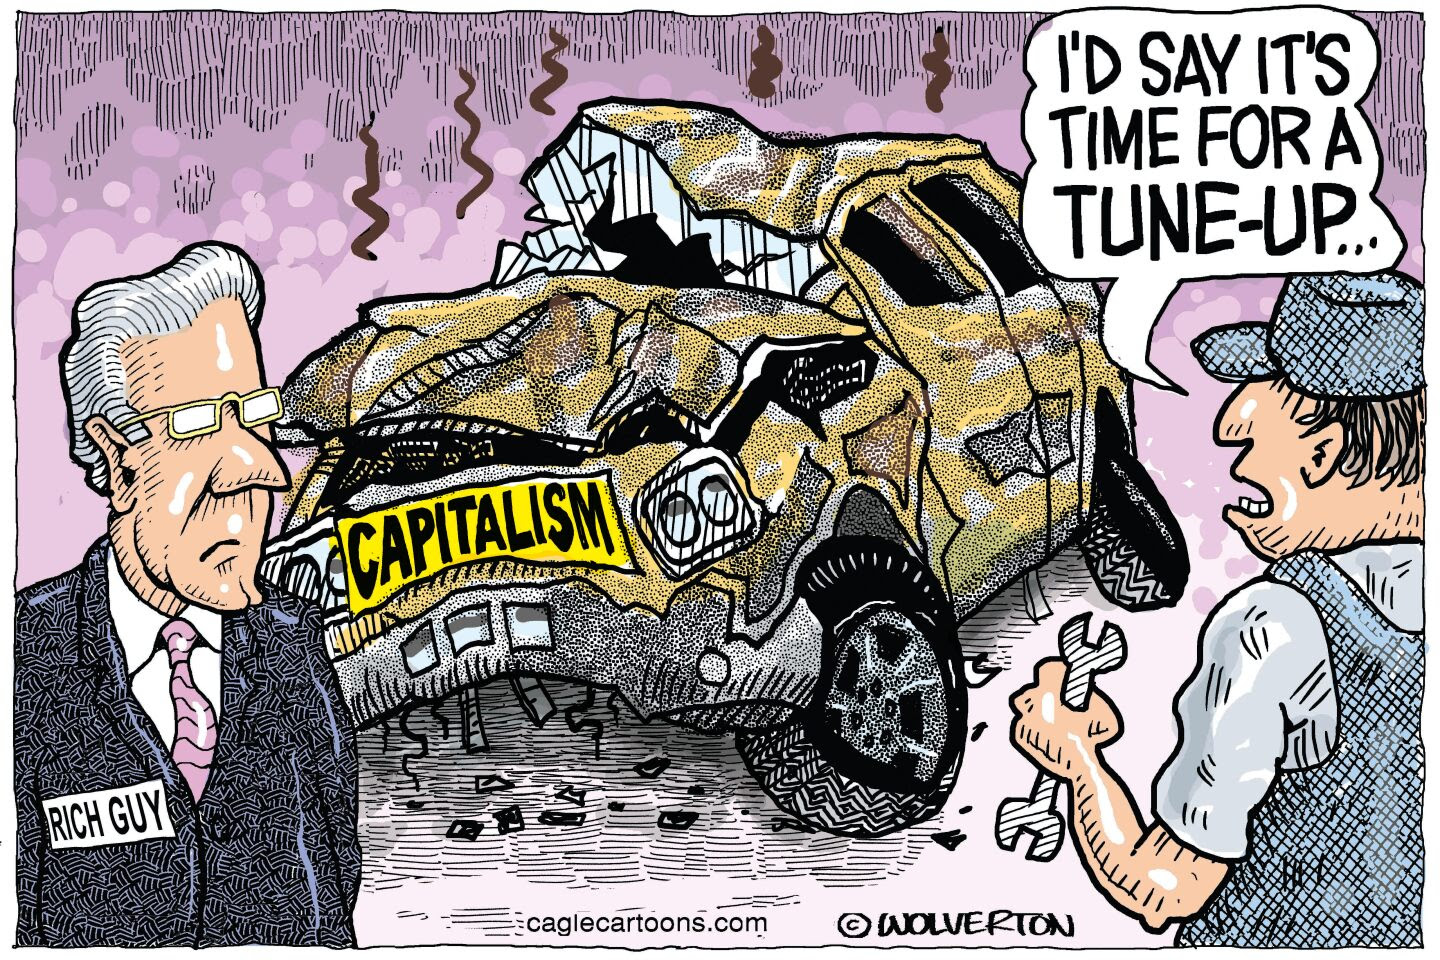 Capitalism is out of control when only billionaires thrive and other Americans struggle to make a living.